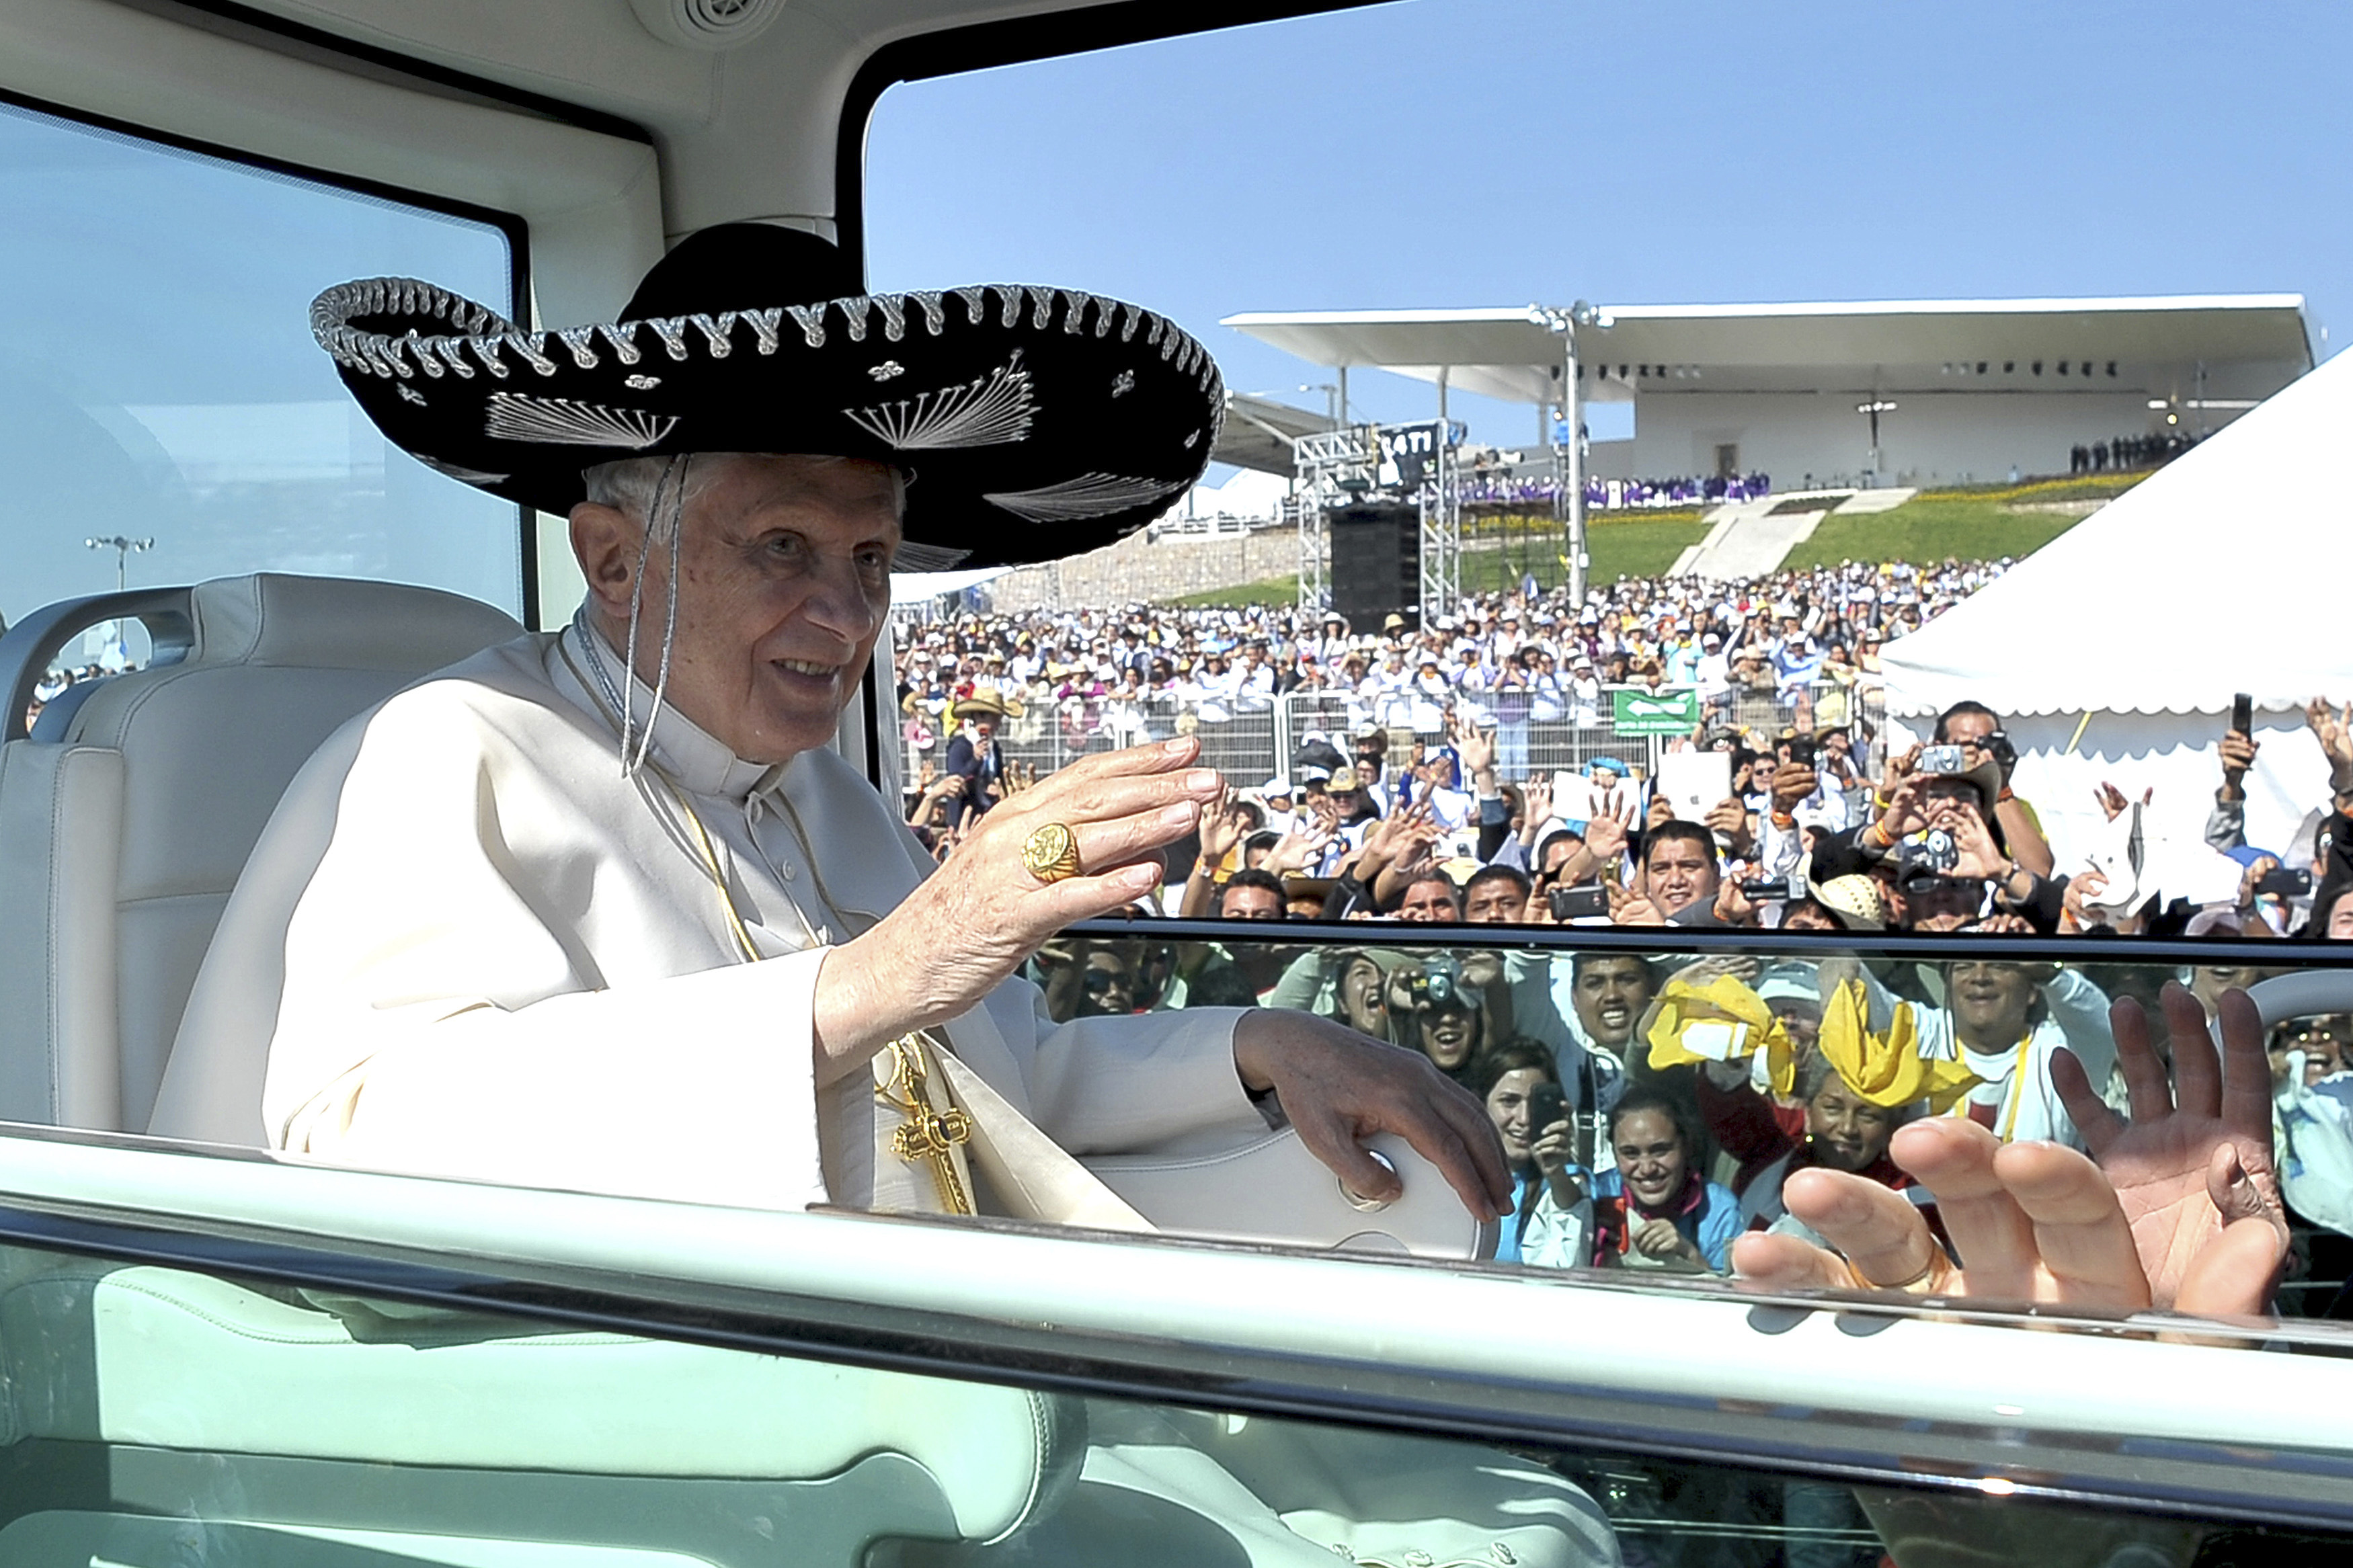 Pope Benedict XVI wears a sombrero, a traditional Mexican hat, while being driven through the crowd before officiating a mass in Silao March 25, 2012. REUTERS/Osservatore Romano (MEXICO - Tags: RELIGION TPX IMAGES OF THE DAY SOCIETY) FOR EDITORIAL USE ONLY. NOT FOR SALE FOR MARKETING OR ADVERTISING CAMPAIGNS. THIS IMAGE HAS BEEN SUPPLIED BY A THIRD PARTY. IT IS DISTRIBUTED, EXACTLY AS RECEIVED BY REUTERS, AS A SERVICE TO CLIENTS